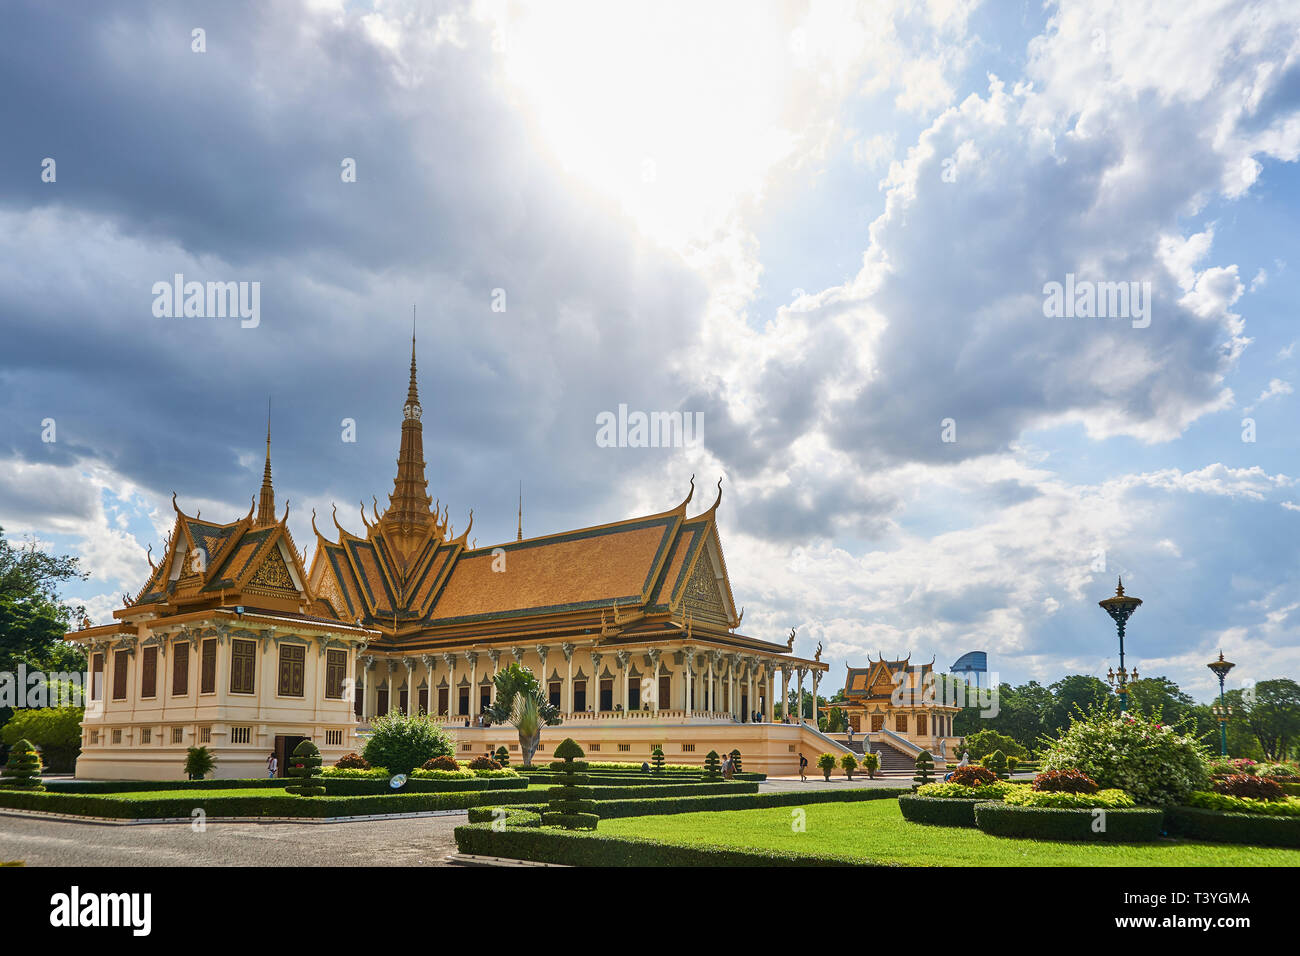 The Throne Hall (Preah Tineang Tevea Vinnichay Mohai Moha Prasat) and Norodom Sihanouk Museum (Damnak Chan) at the Royal Palace, Phnom Penh, Cambodia. Stock Photo